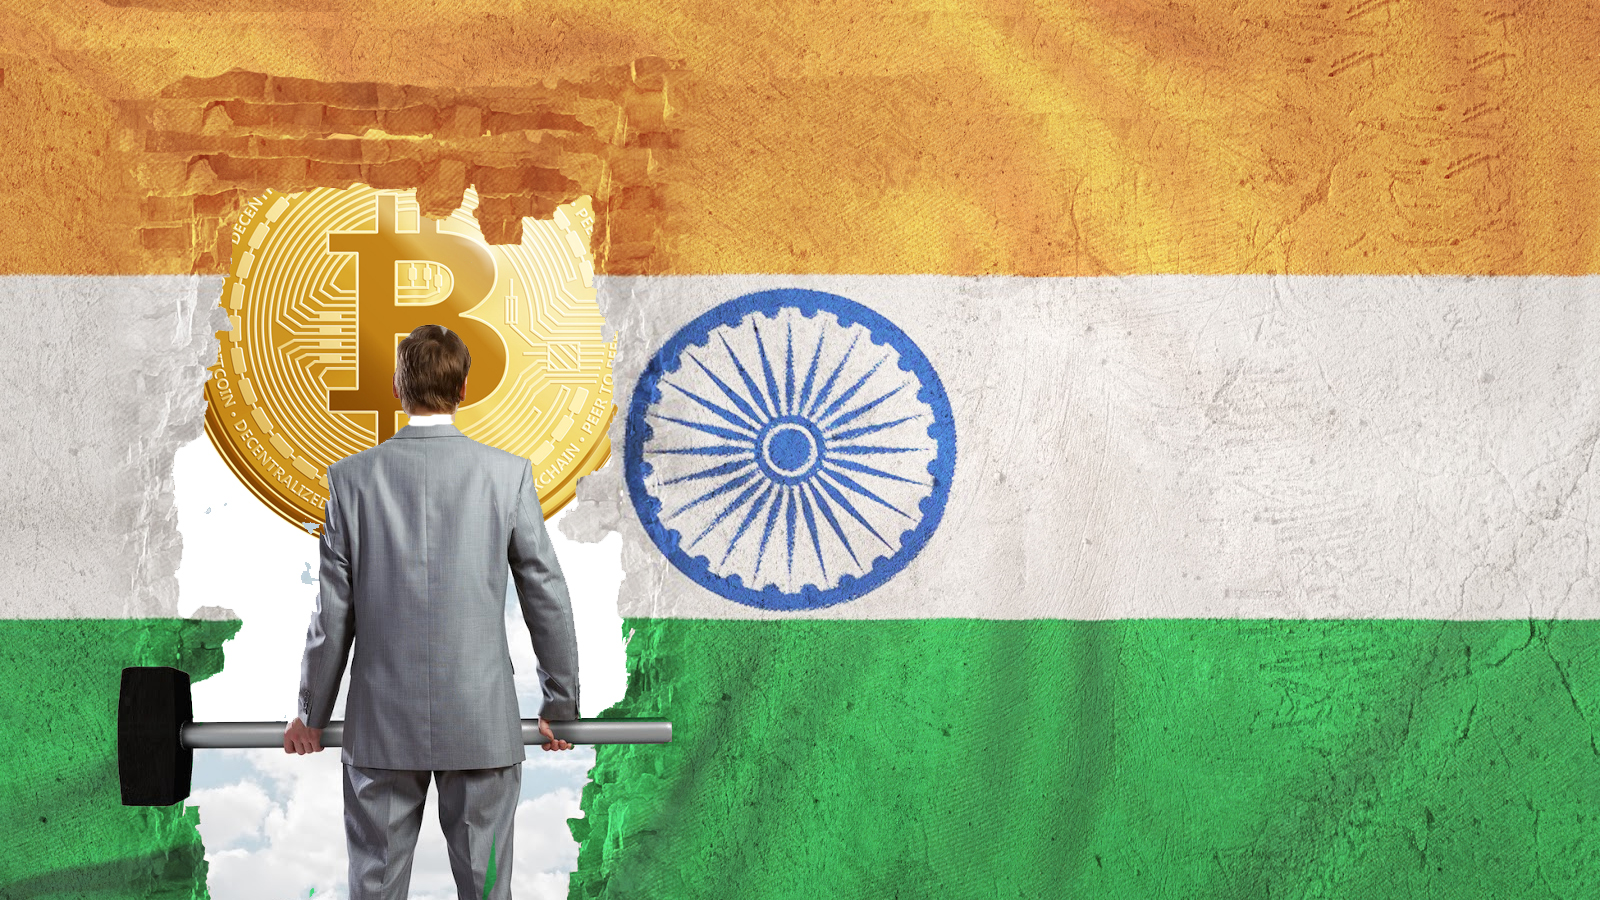 Indian Central Bank Clarifies No Restrictions On Banking Services For Bitcoin